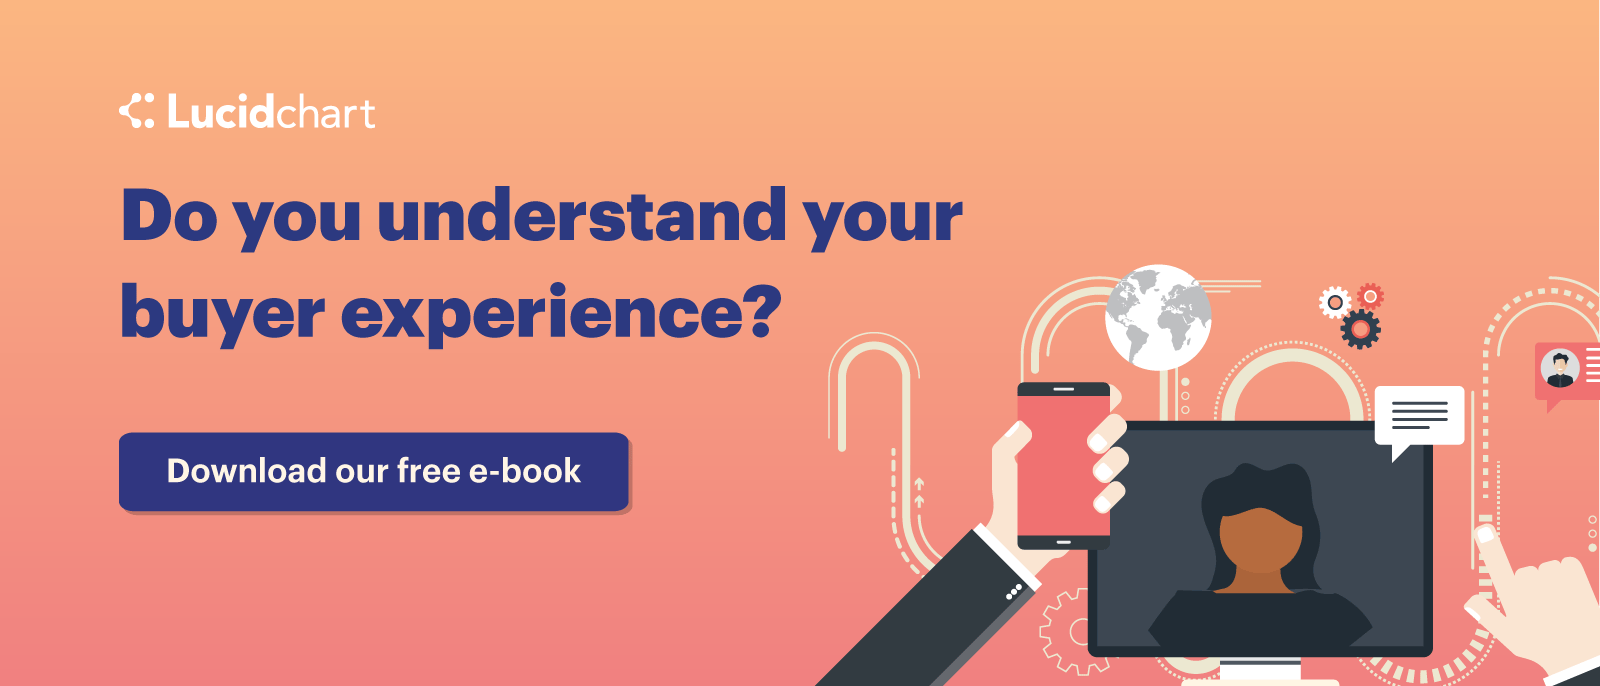 download our e-book on testing your buyer experience